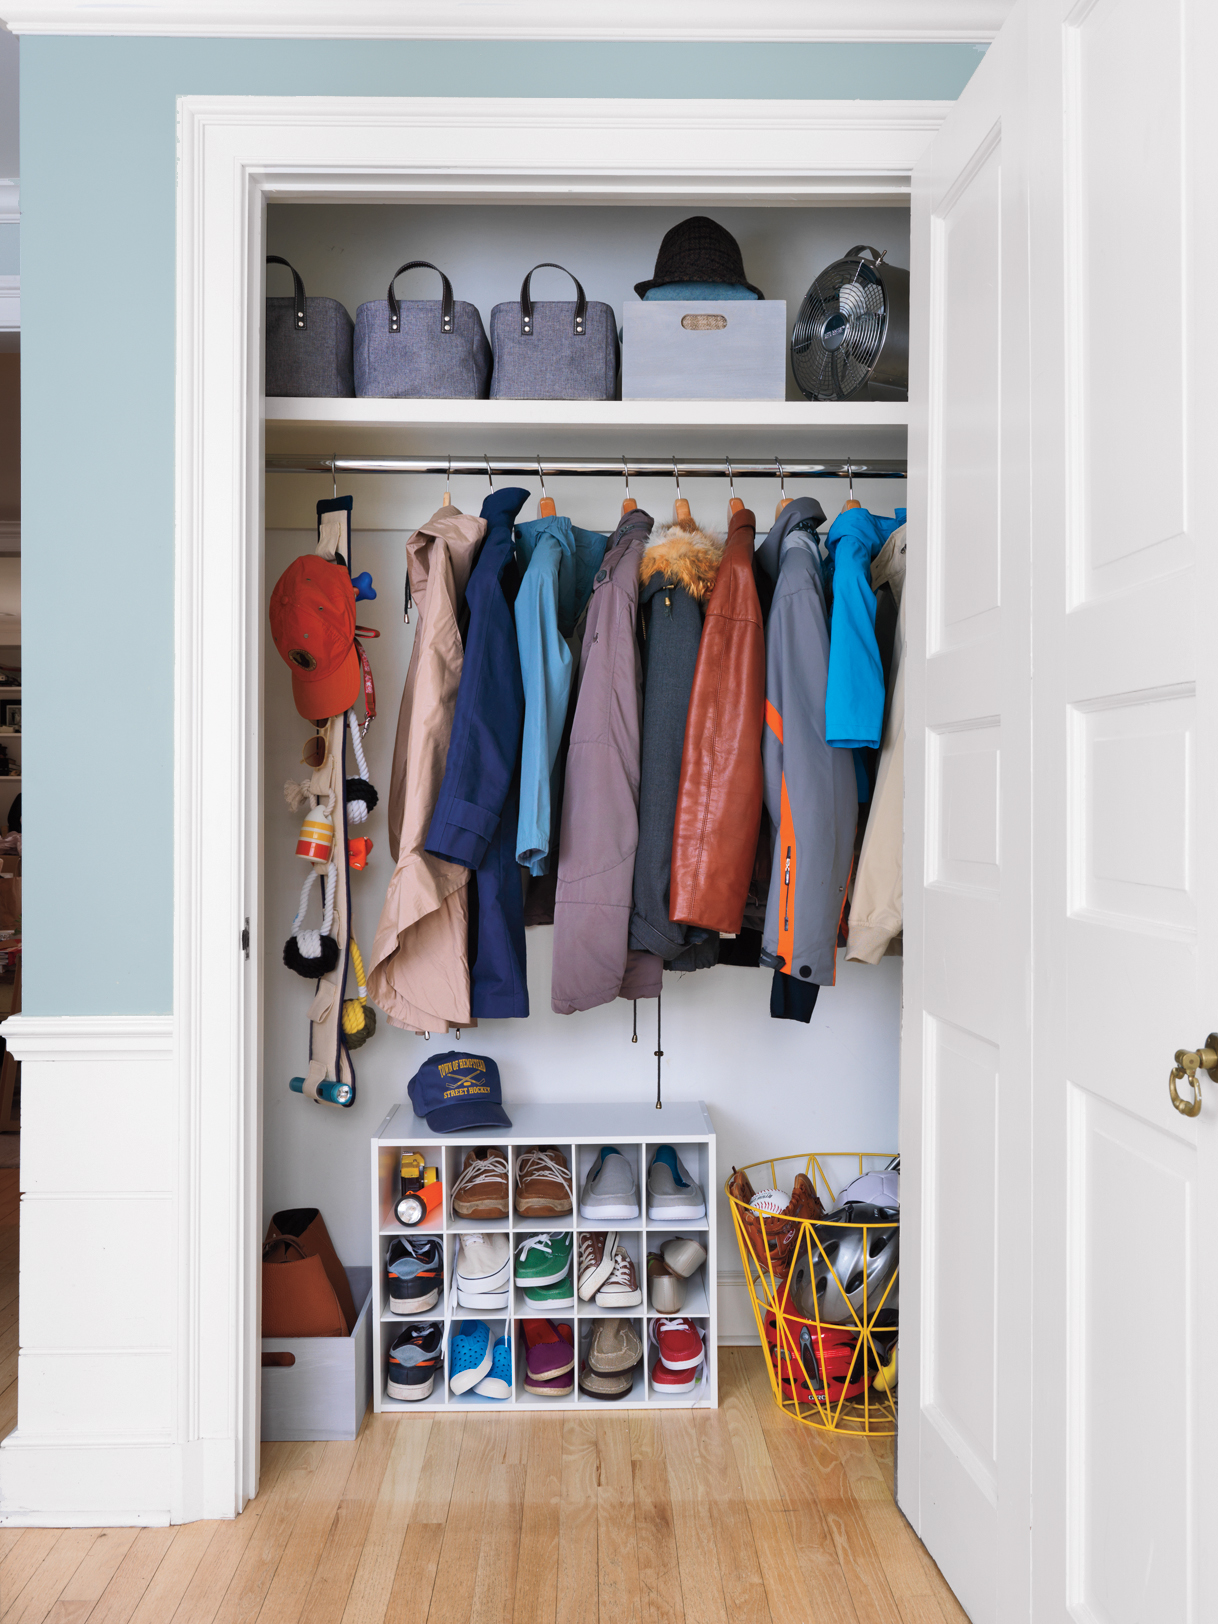 Closet with shoes, clothes, and top shelf organized neatly